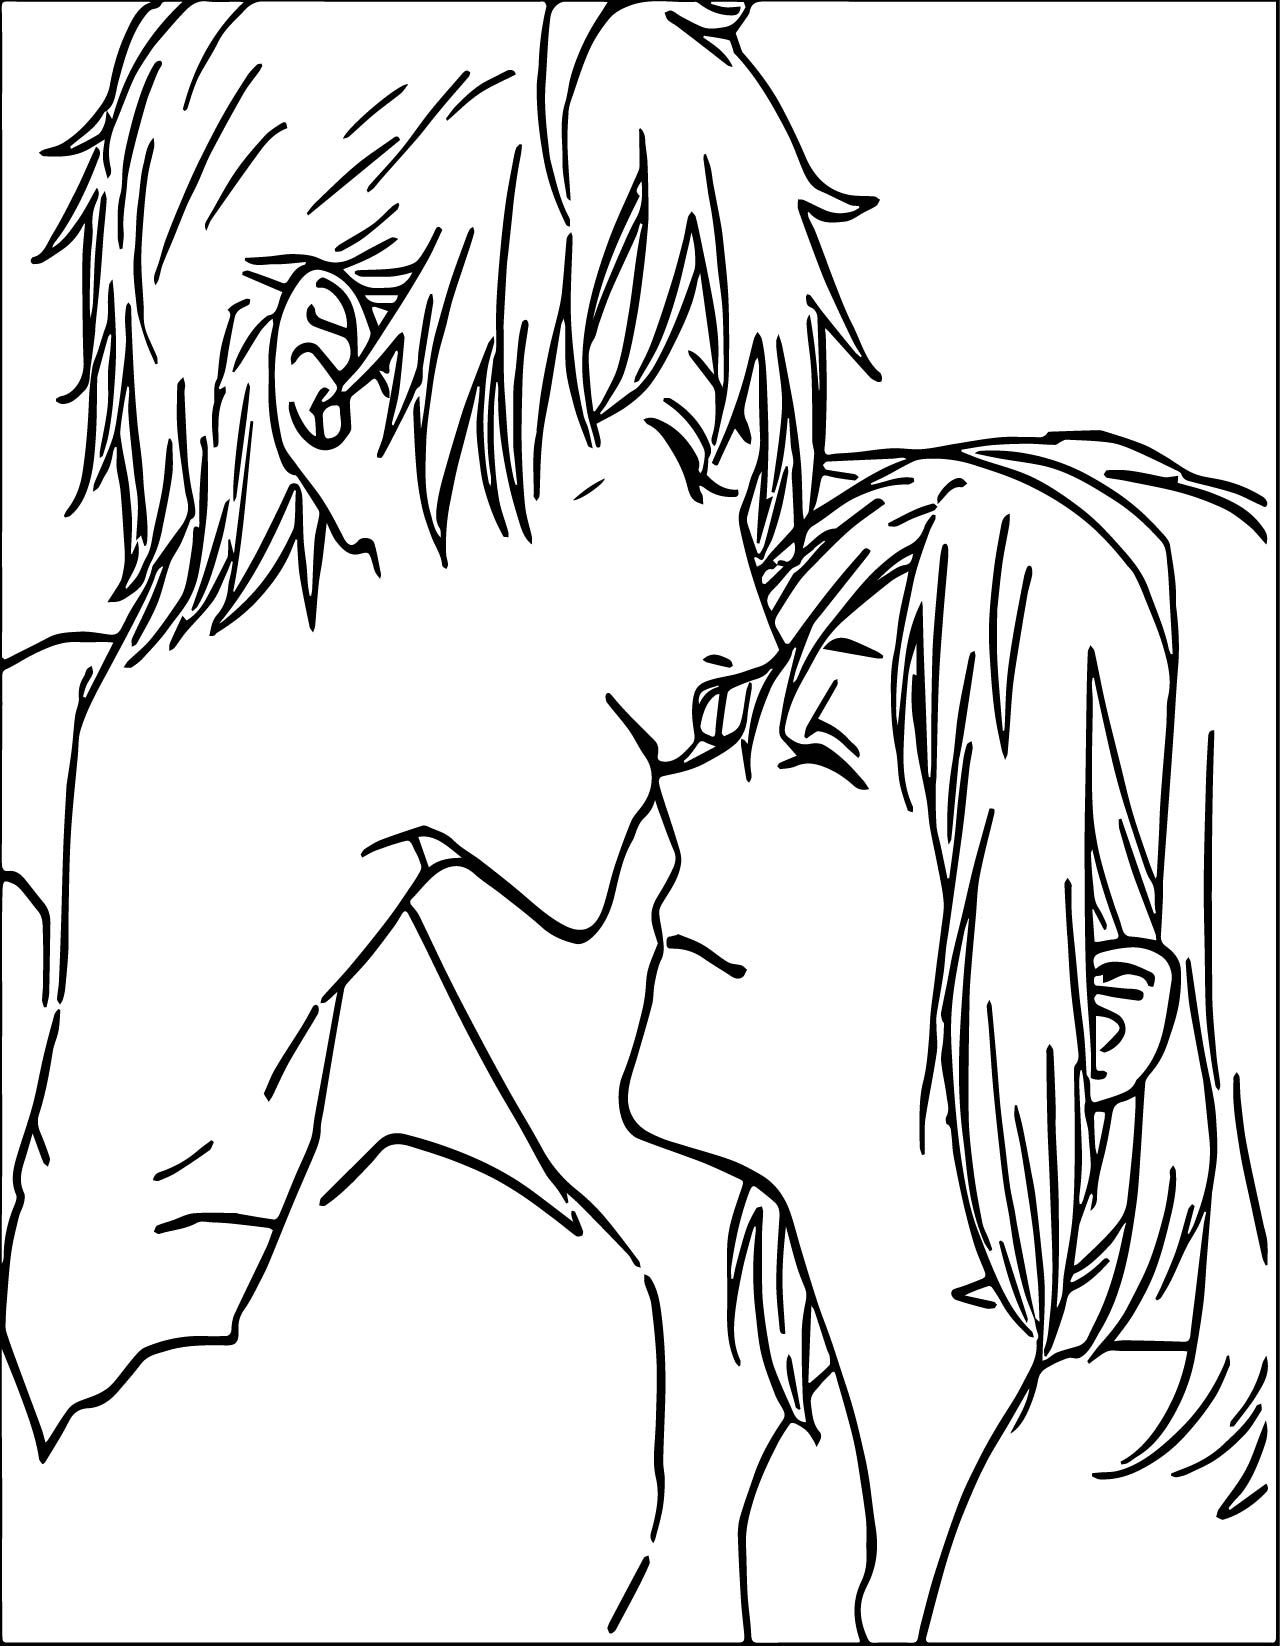 Awesome Anime Boy And Girl Couple Love Coloring Page Love Coloring Pages Cute Coloring Pages Anime Drawing Books